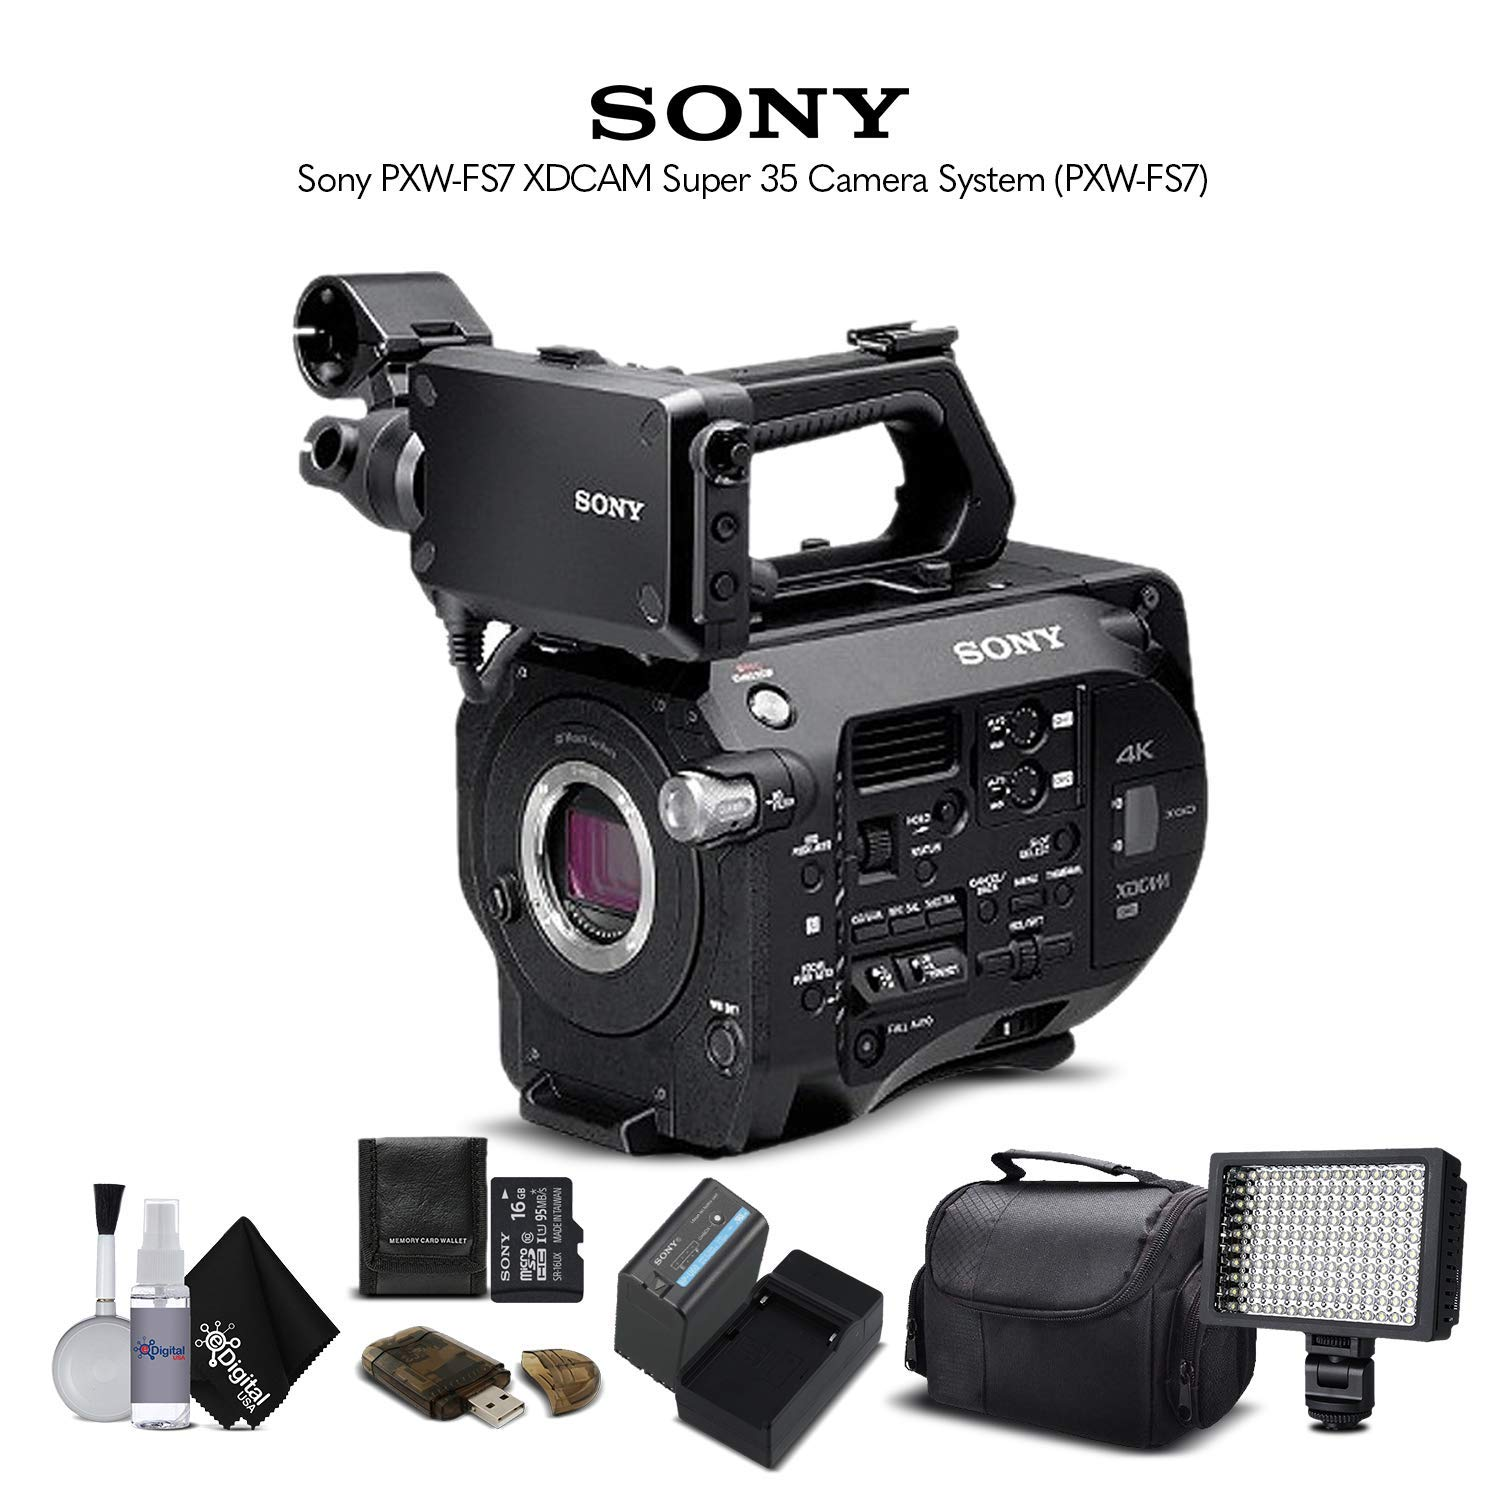 Sony PXW-FS7 XDCAM Super 35 Camera System (PXW-FS7) with Extra Battery, LED Light, Case and More. - Starter Bundle by Mad Cameras